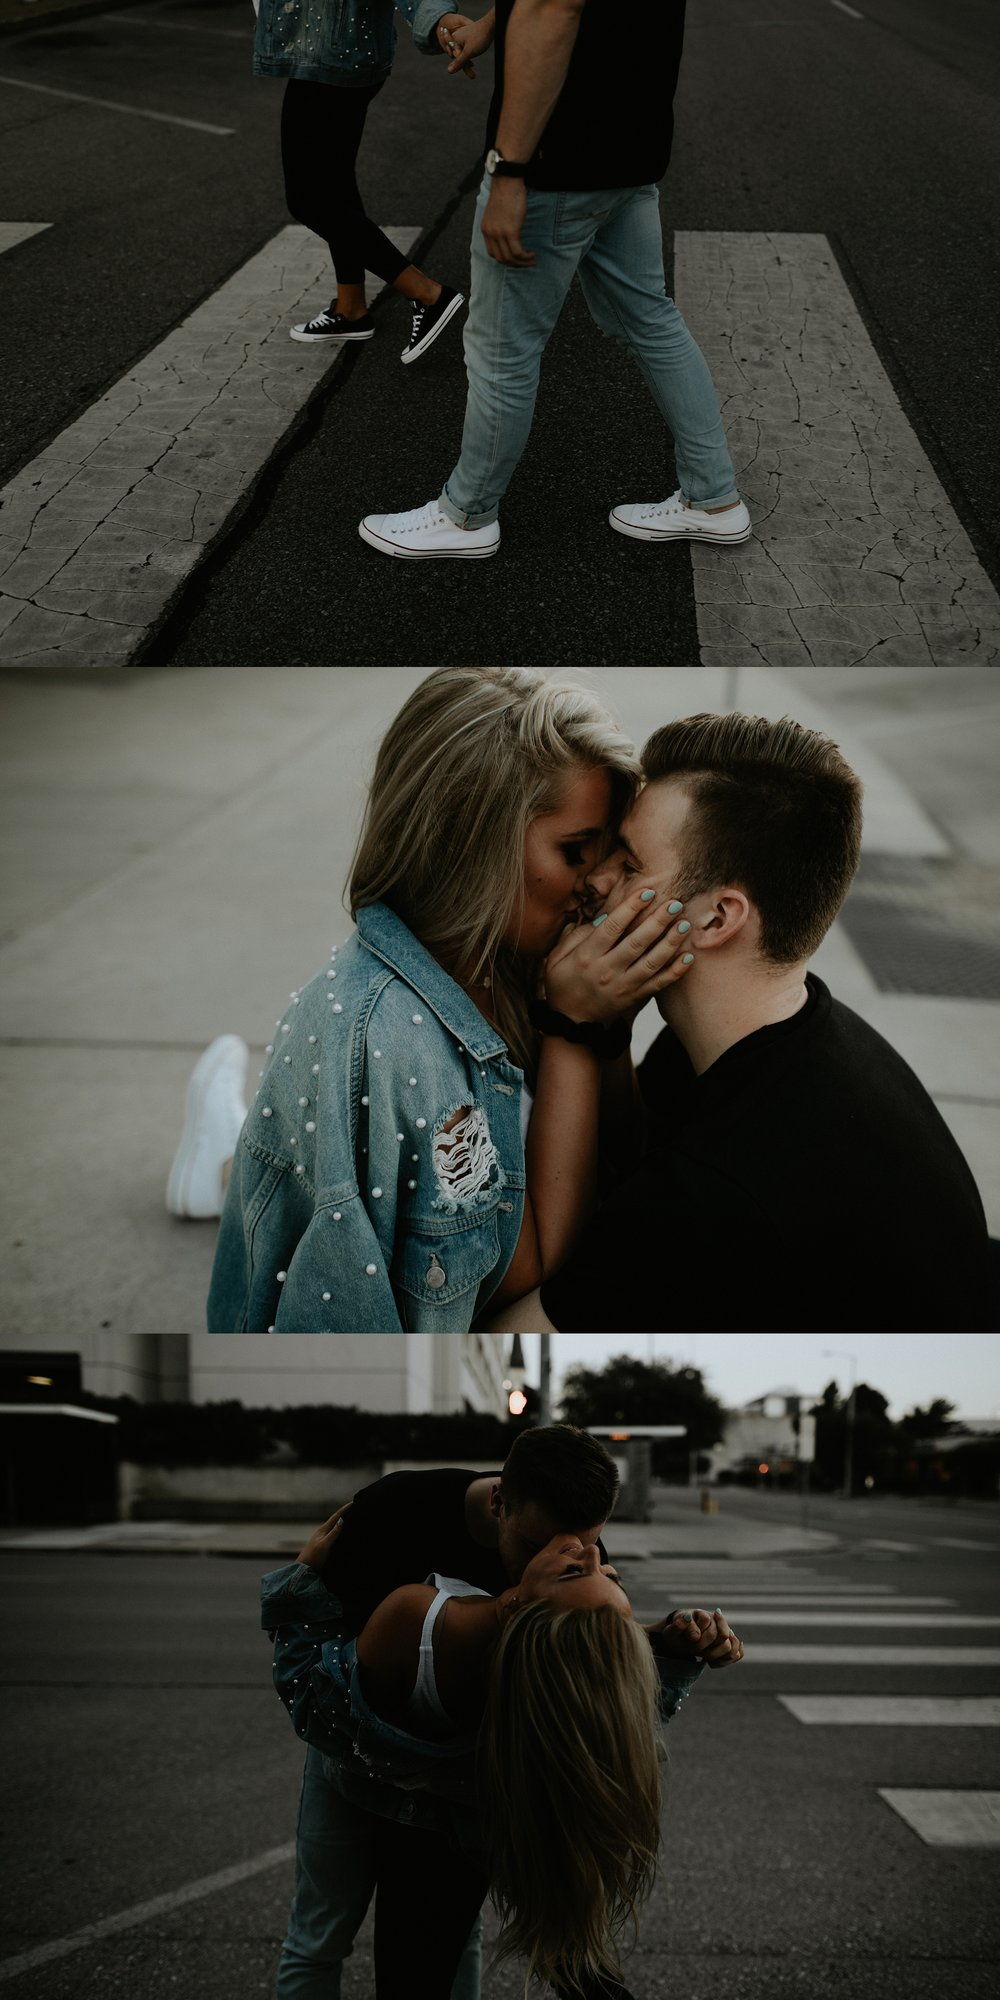 Downtown Lincoln Nebraska Engagement Session - Erin + Tom - Trin Jensen Photography_0031.jpg